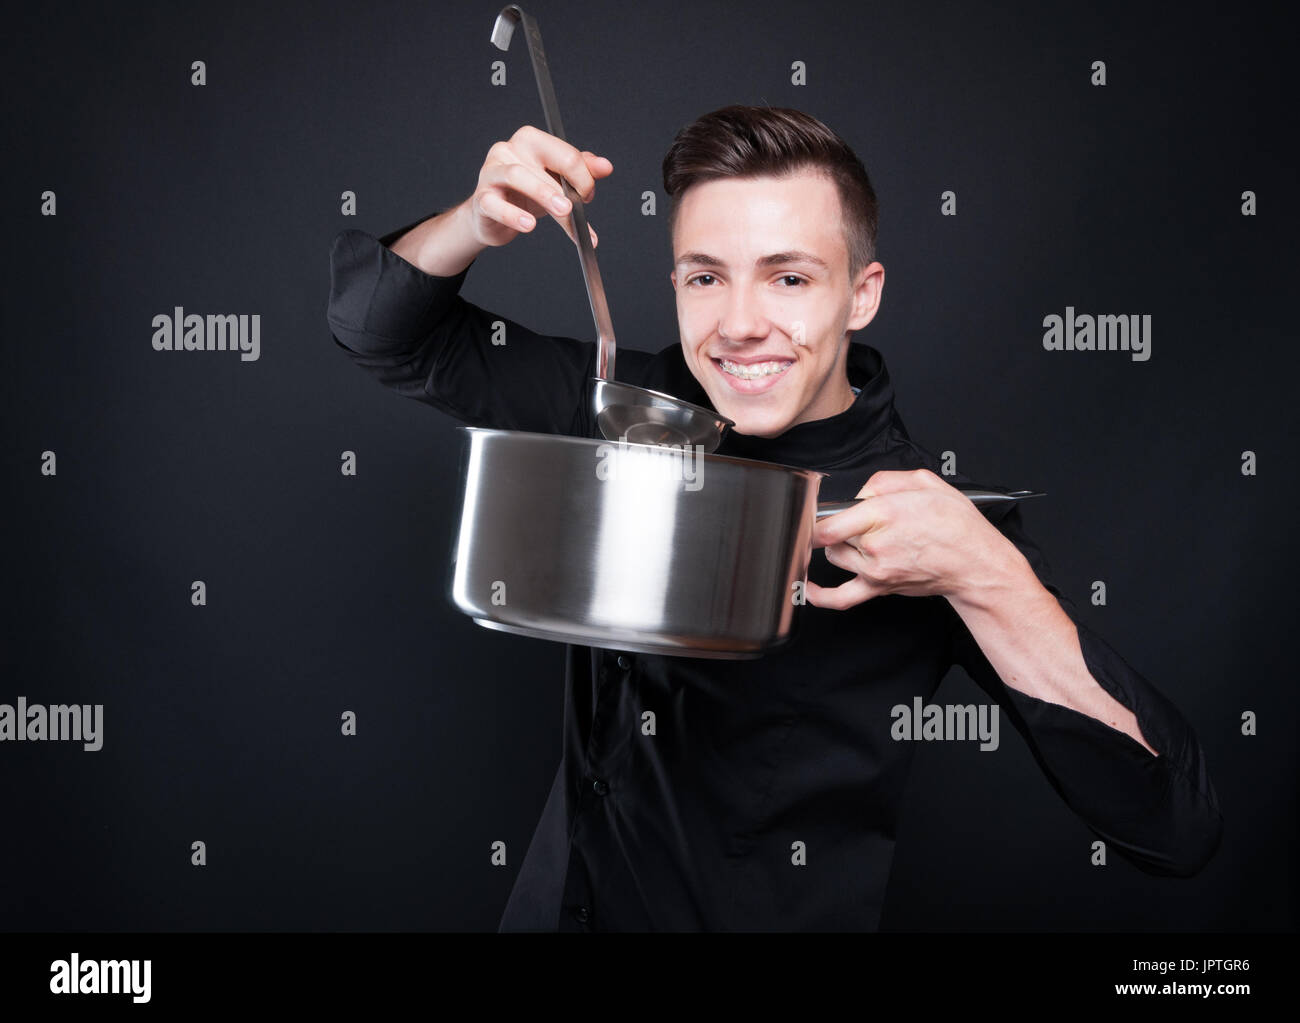 Happy chef man making delicious soup in silver pot isolated on black background Stock Photo